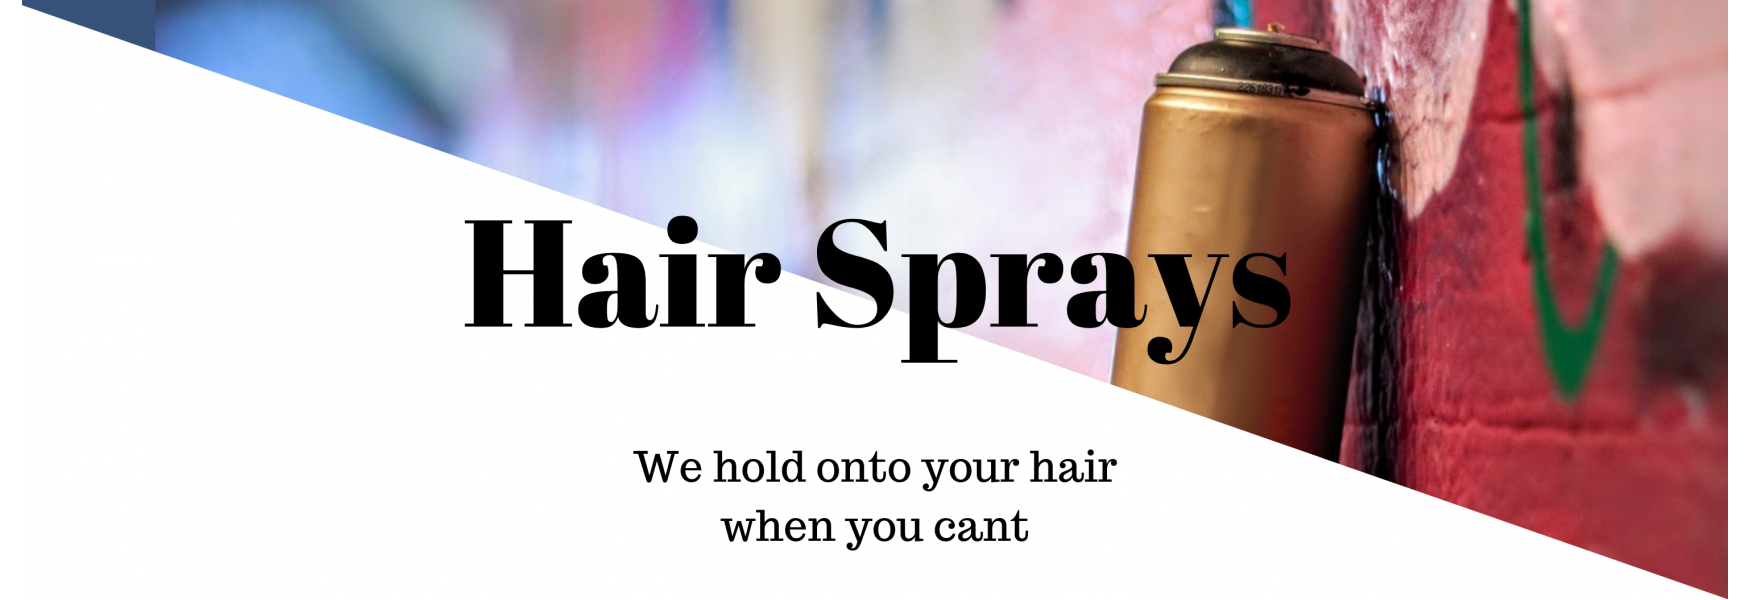 hair spray category banner